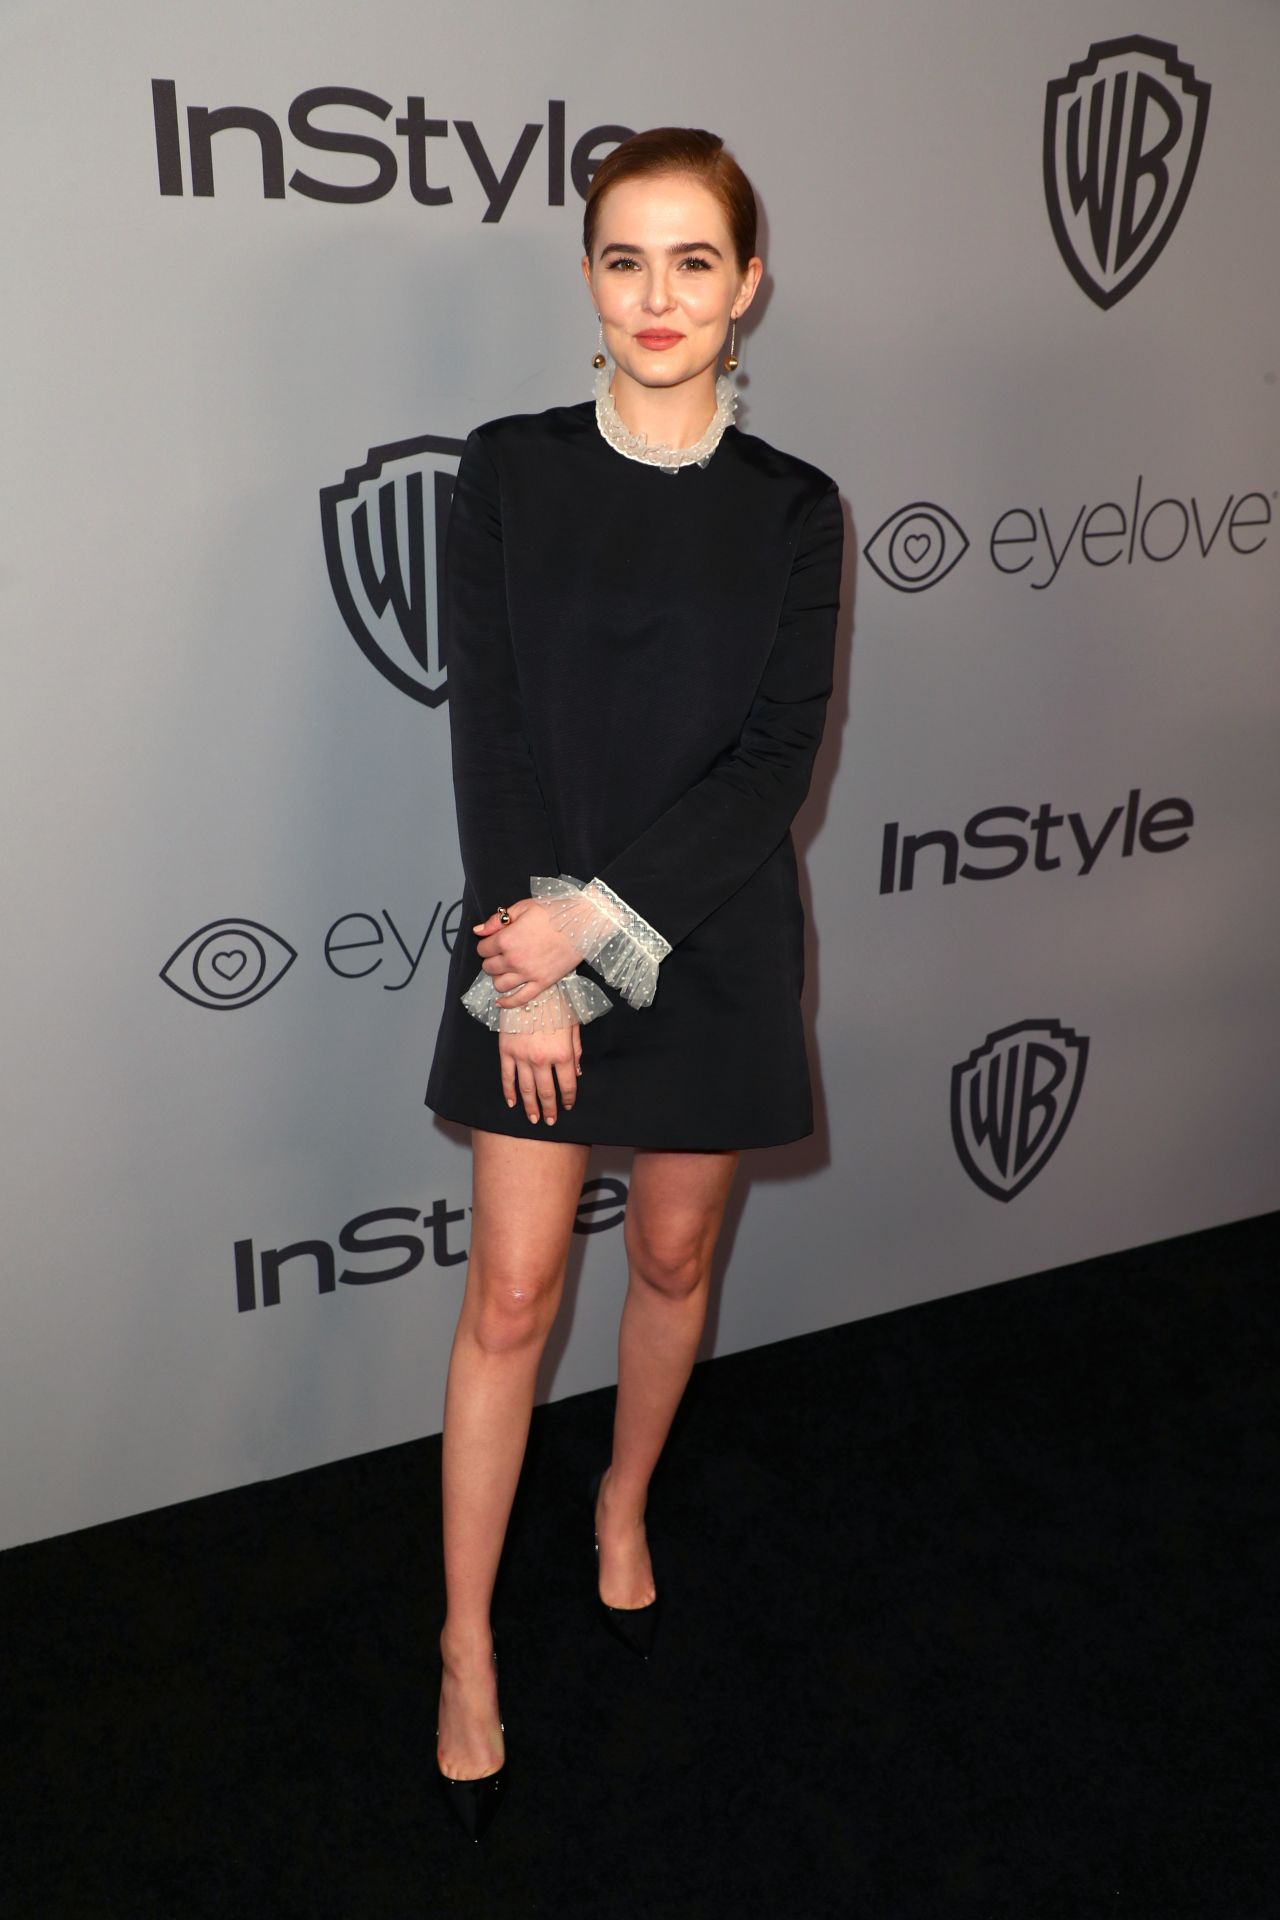 http://celebmafia.com/wp-content/uploads/2018/01/zoey-deutch-instyle-and-warner-bros-golden-globes-2018-after-party-5.jpg